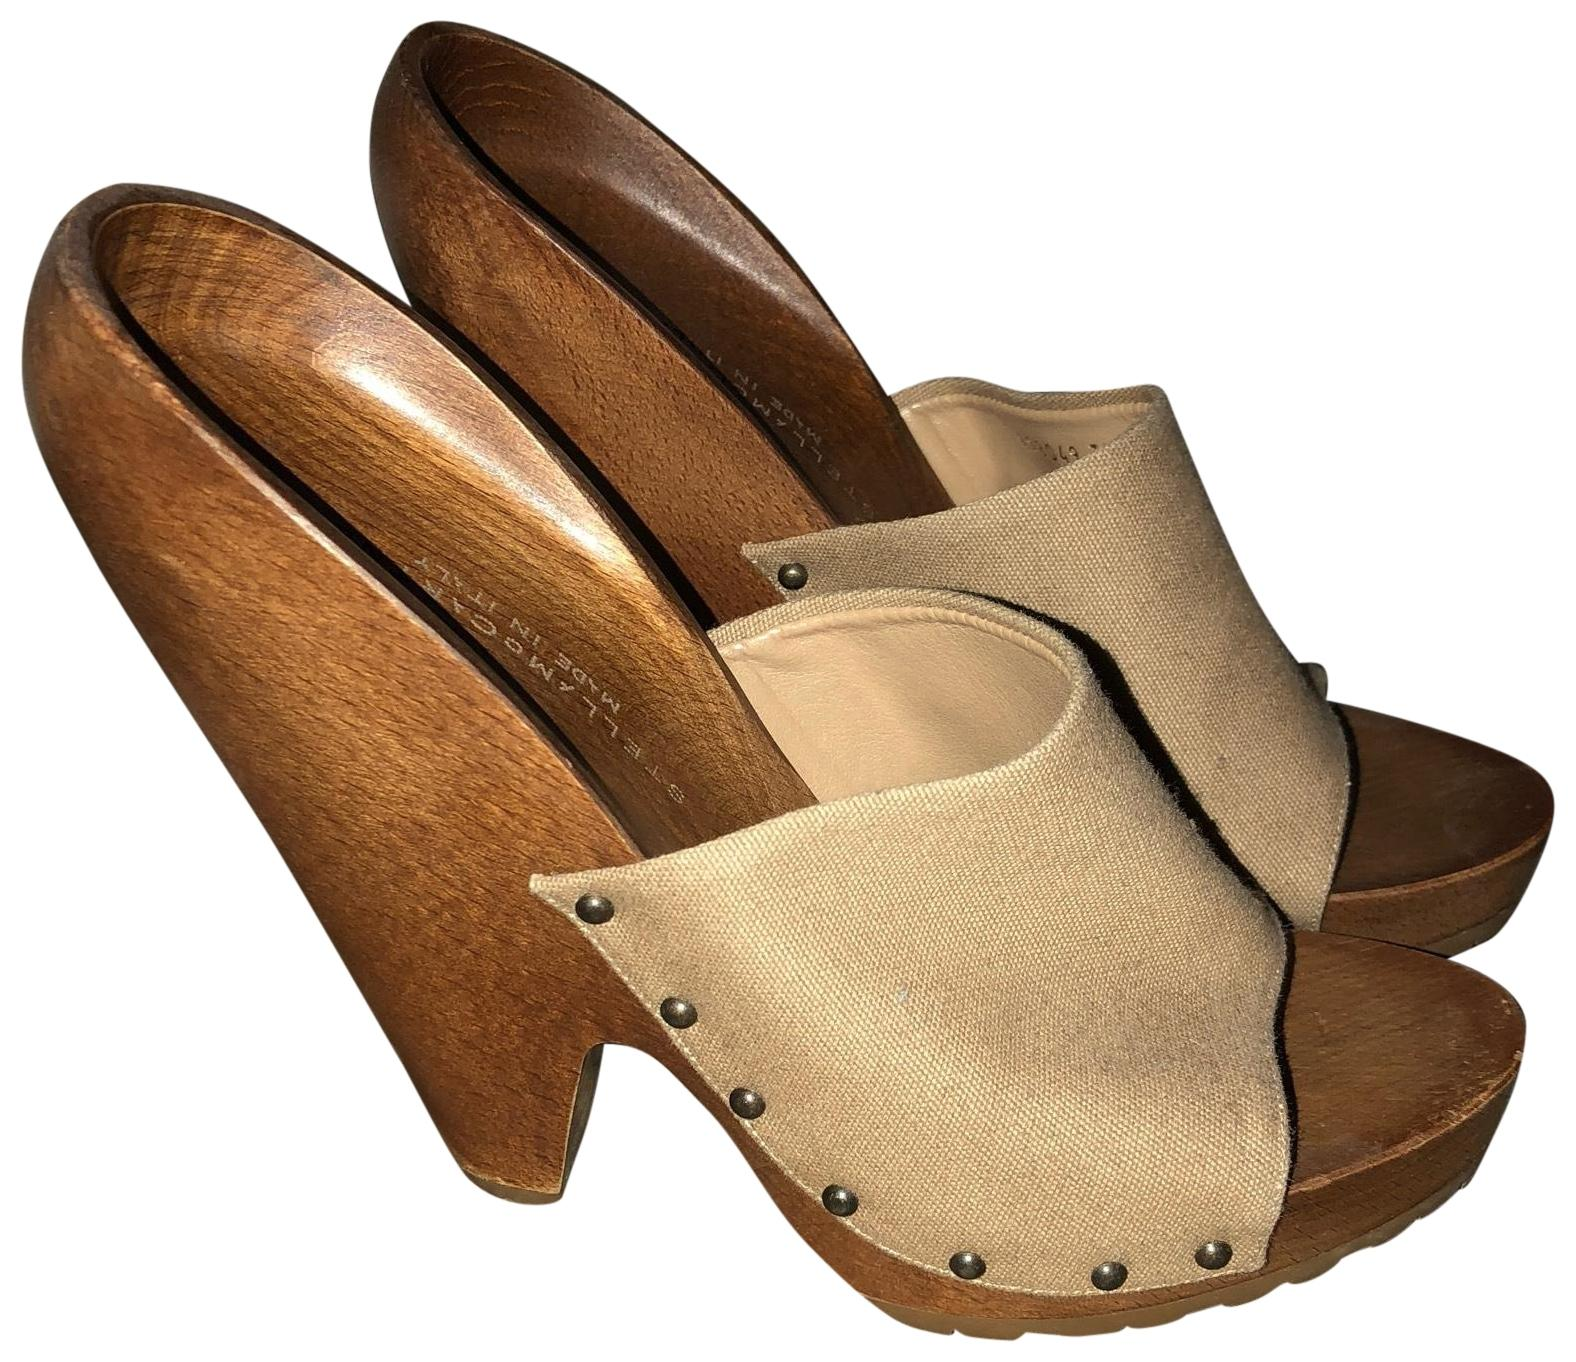 16dd39999 Stella McCartney Beige and and and Wood 198049 Mules Slides Size EU 37  (Approx. US 7) Wide (C